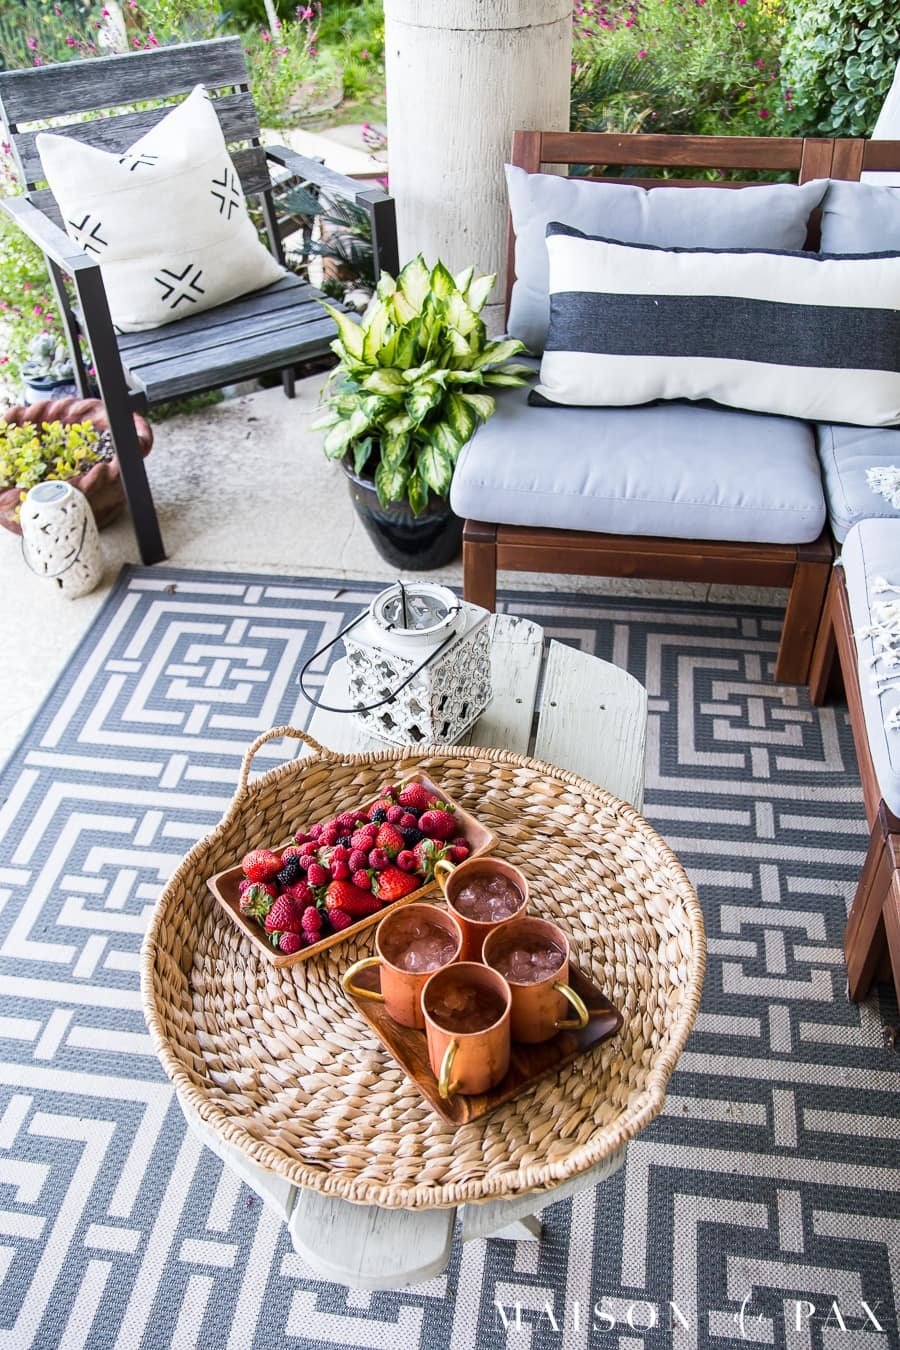 Copper mugs and wooden plates are perfect for outdoor entertaining: get more outdoor decorating ideas! #outdoorliving #patio #patiodecor #blackandwhite #succulents #backporch #outdoorentertaining